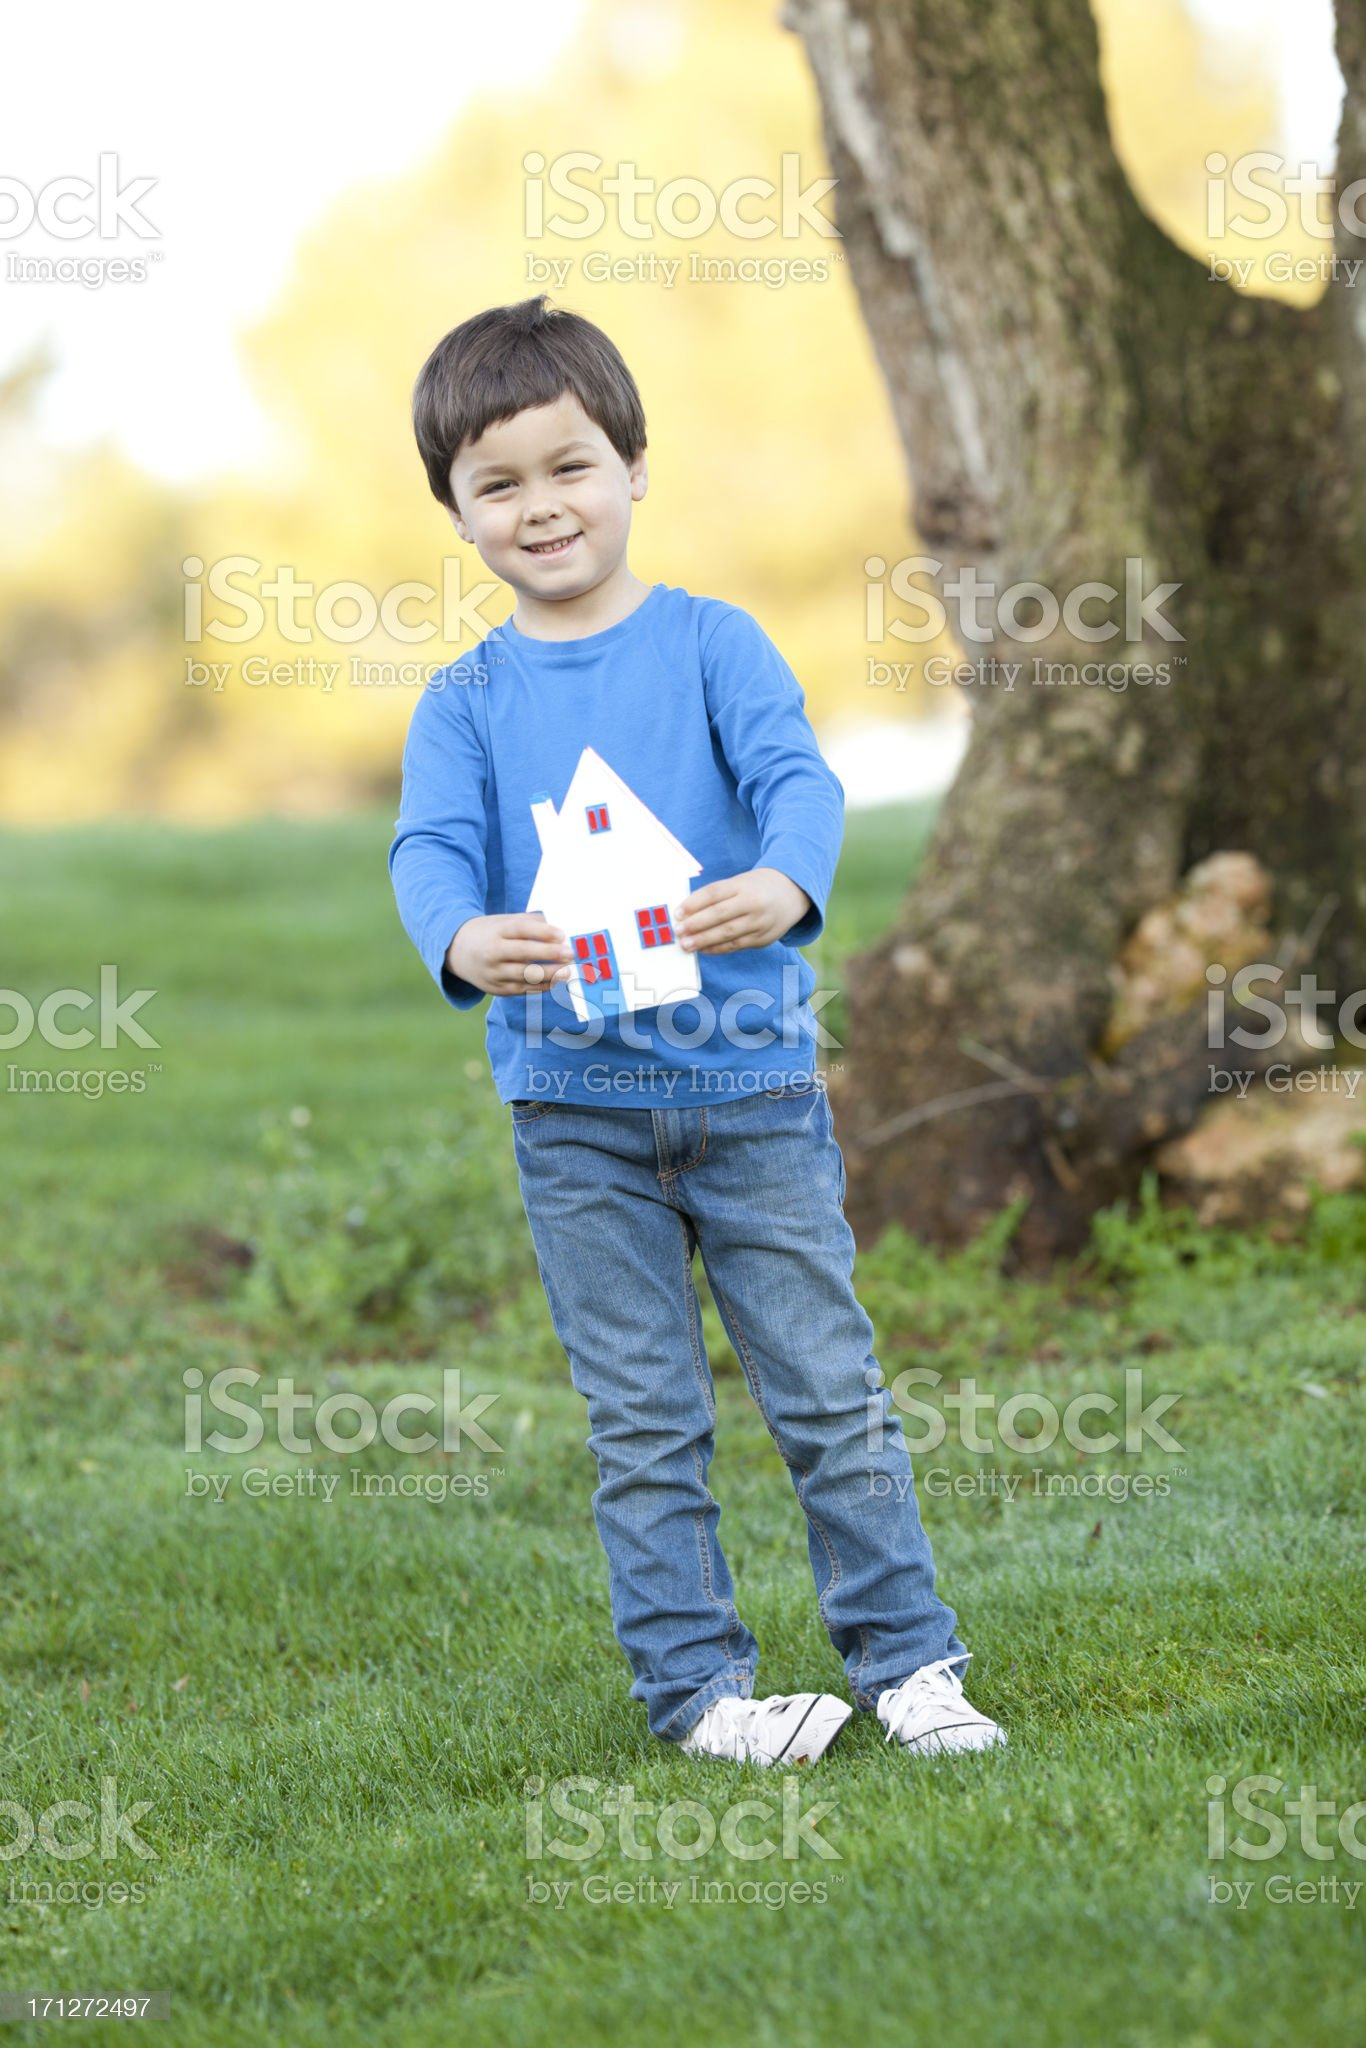 little boy with house-miniature royalty-free stock photo